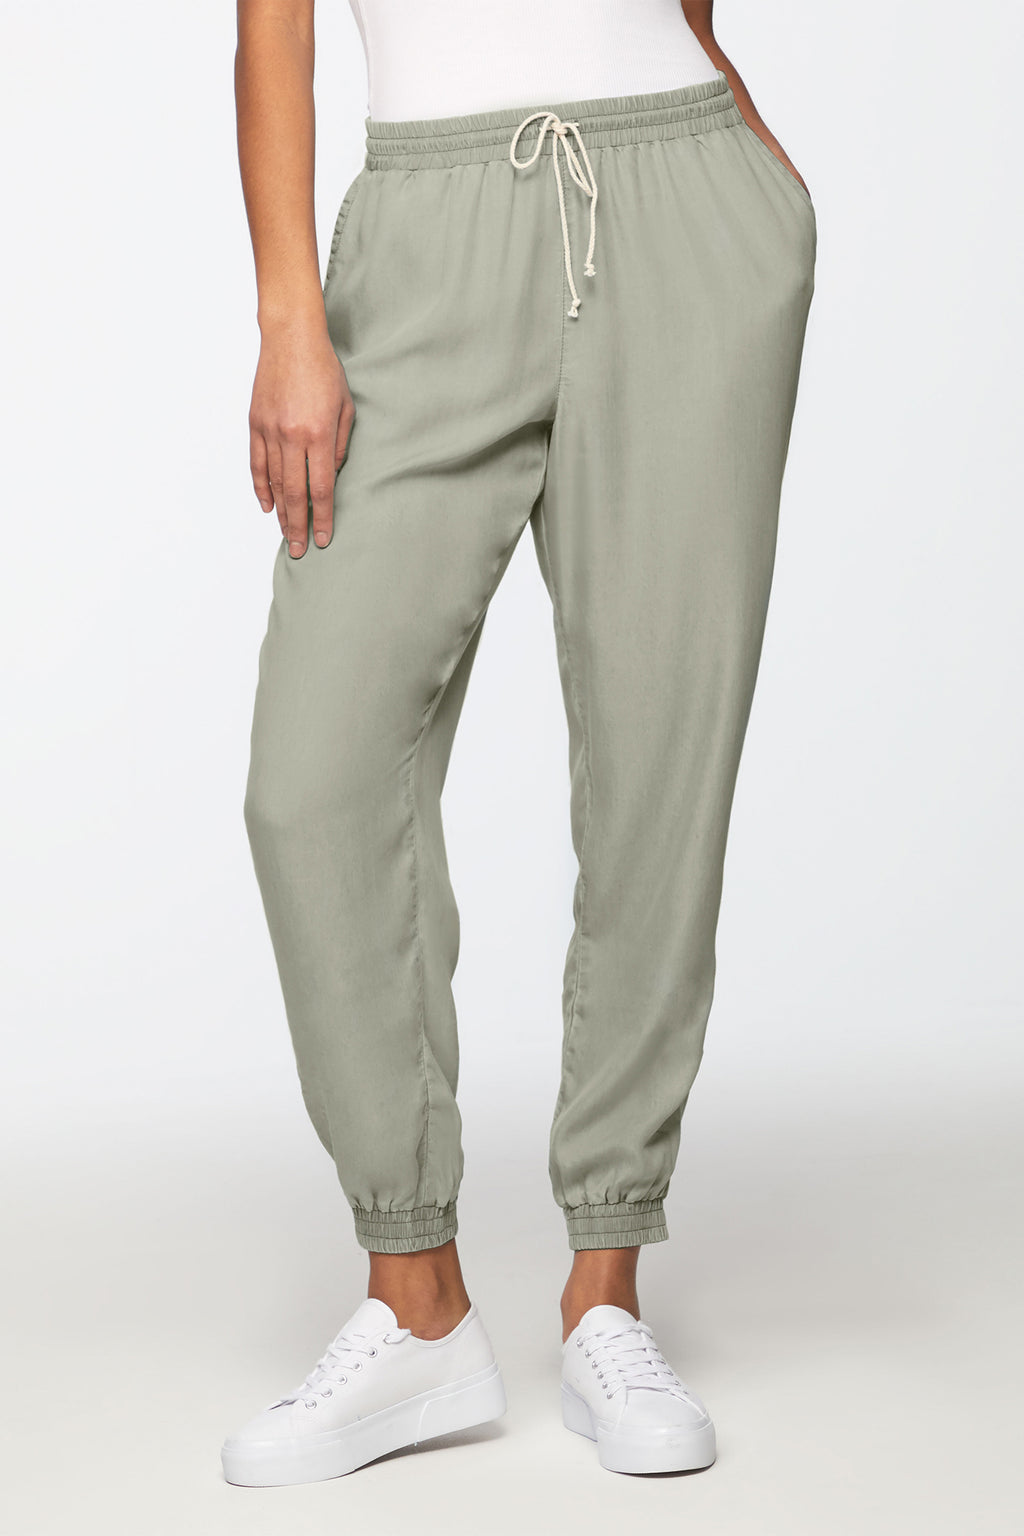 DIXIE PANT - LIGHT SAGE